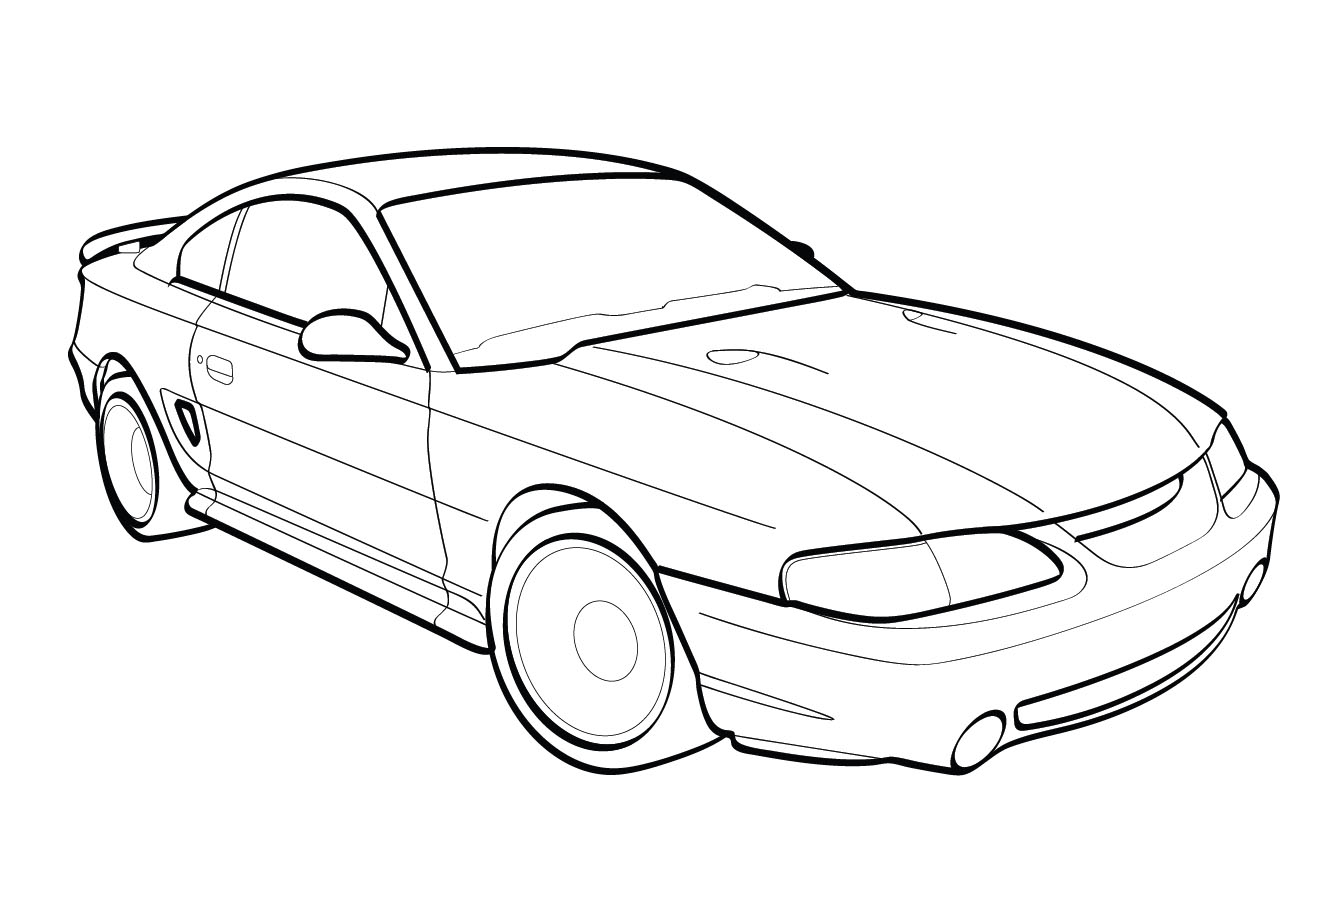 fuse diagram for 1998 ford mustang html